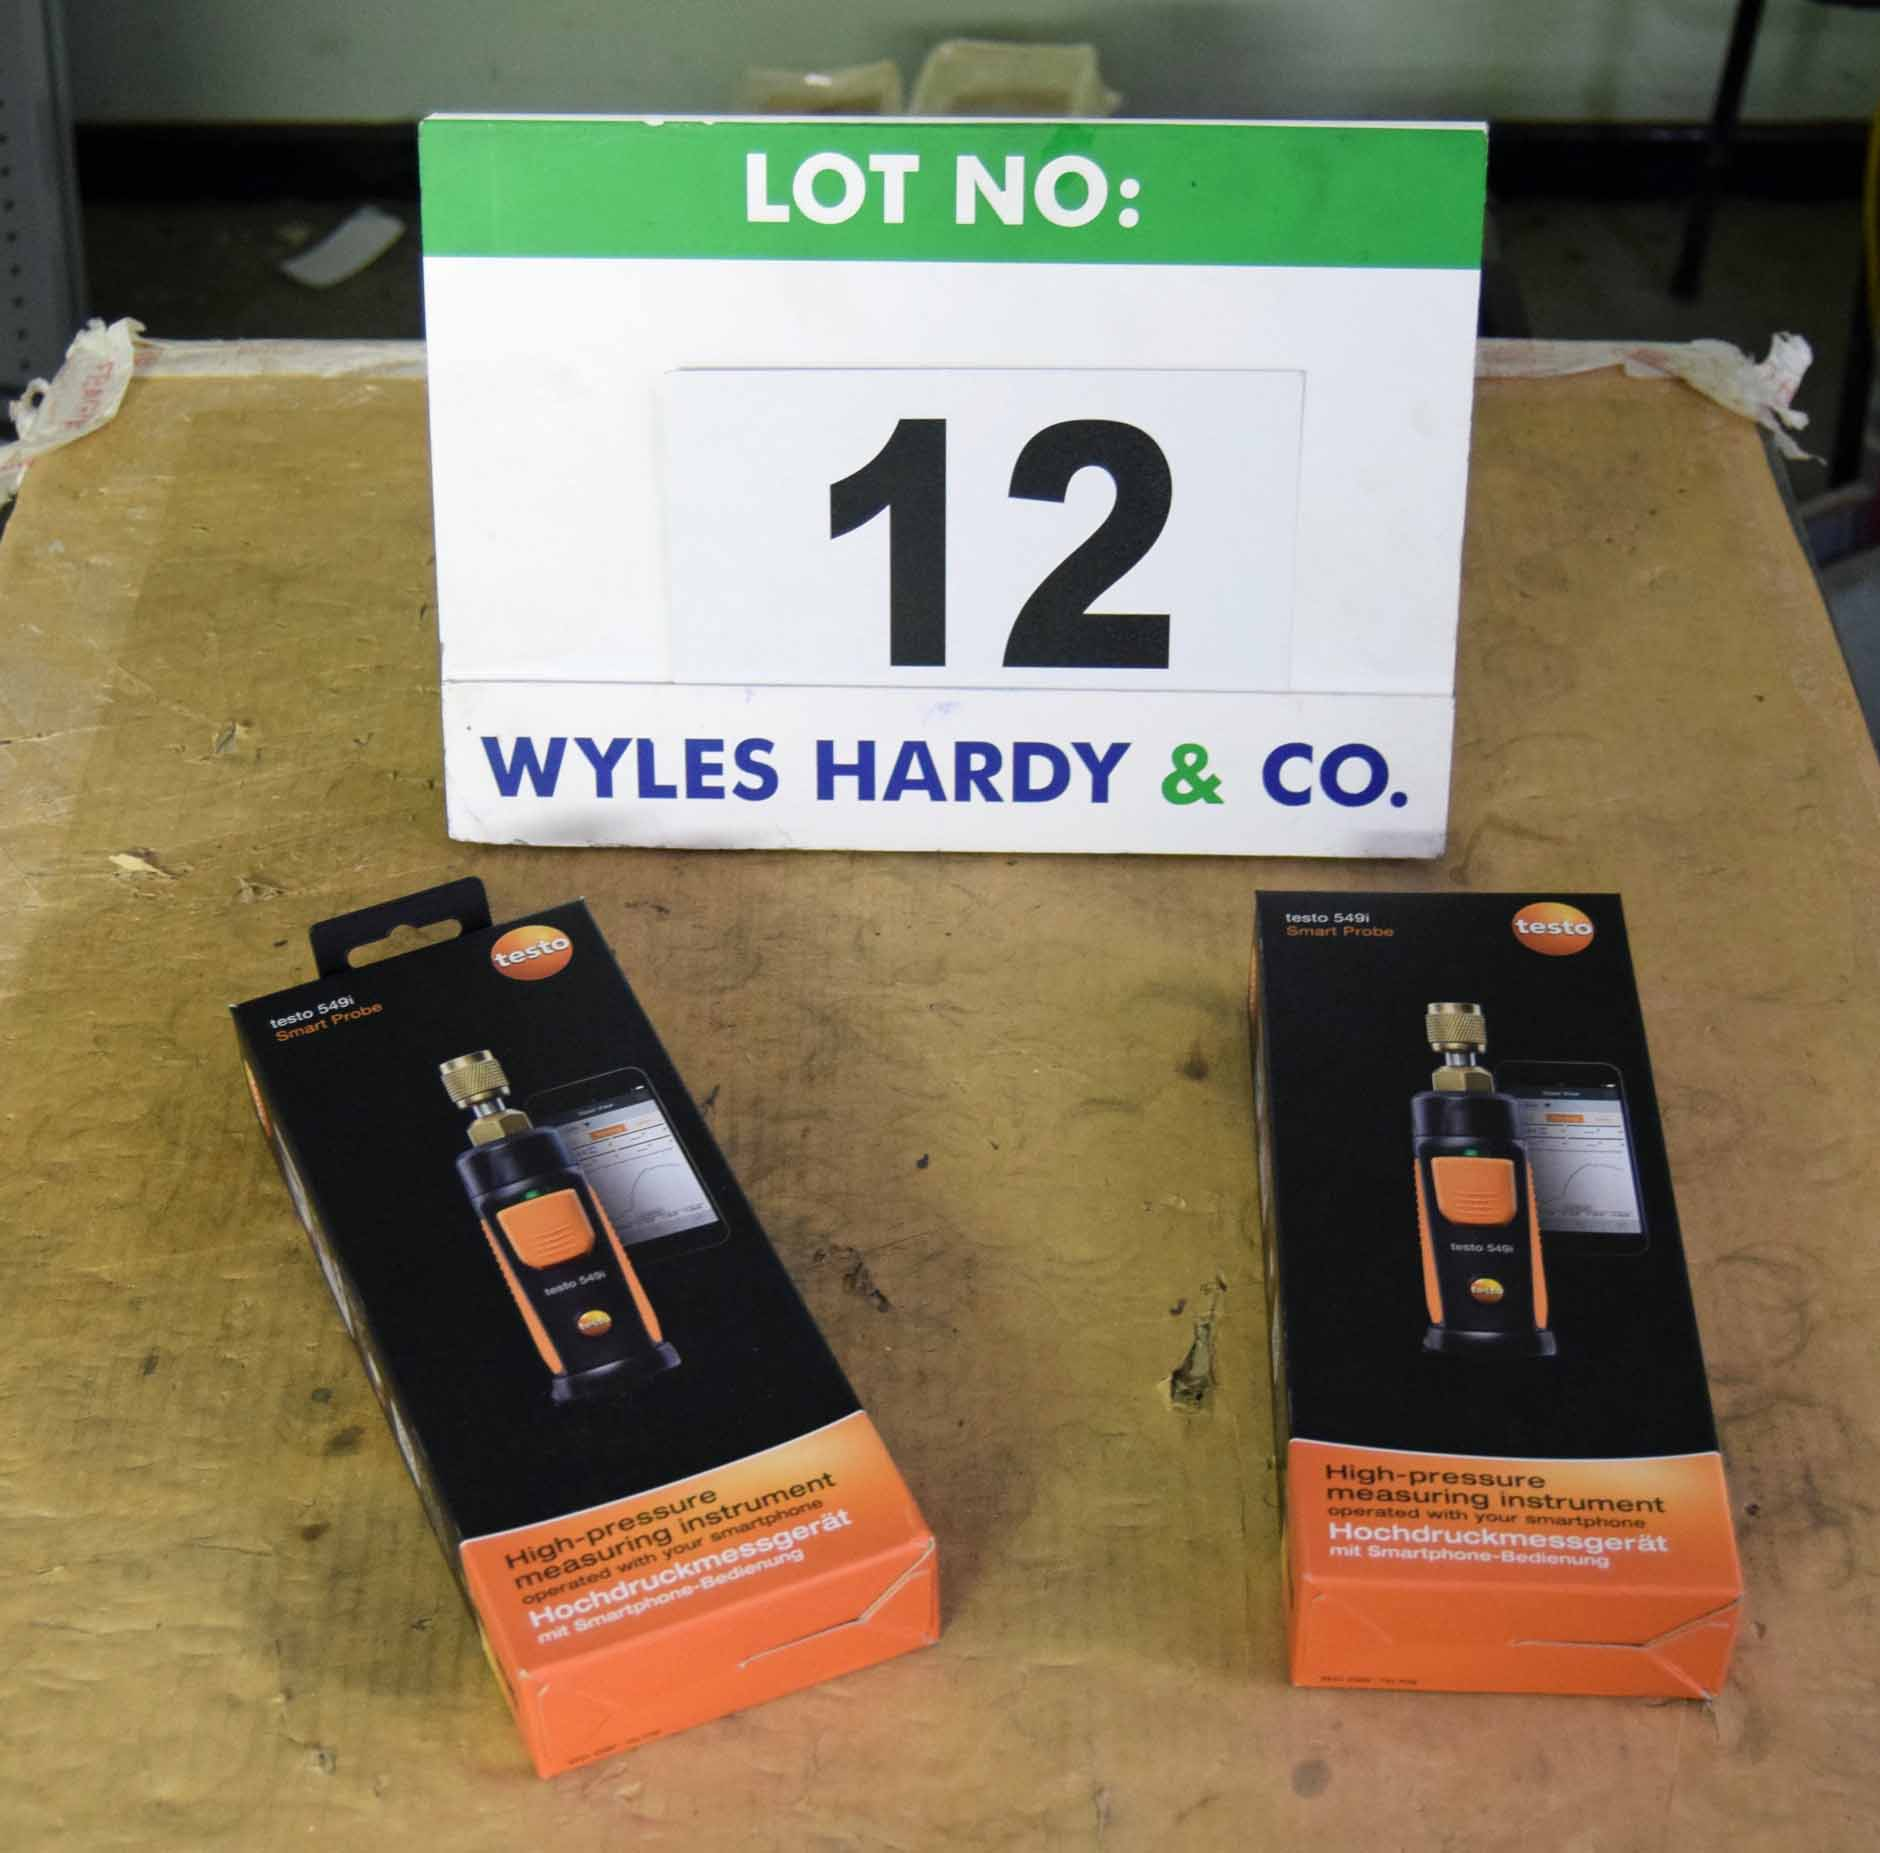 Lot 12 - Two TESTO 549i Smart Probes (As Photographed)